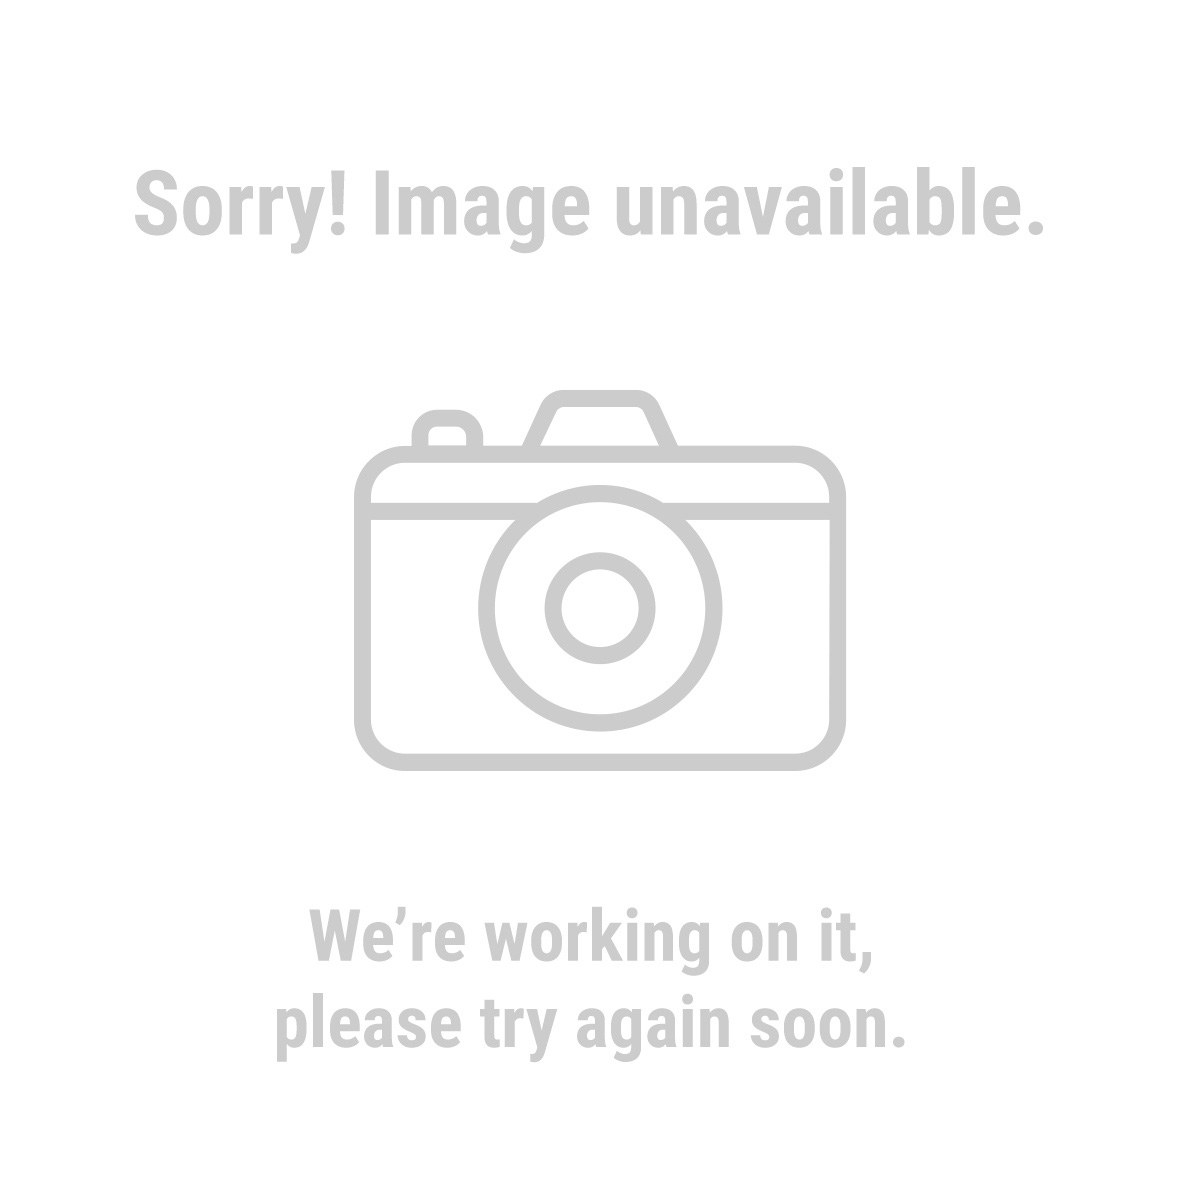 Drill Master 93082 Pack of 10 High Speed Steel Titanium Nitride Drill Bits